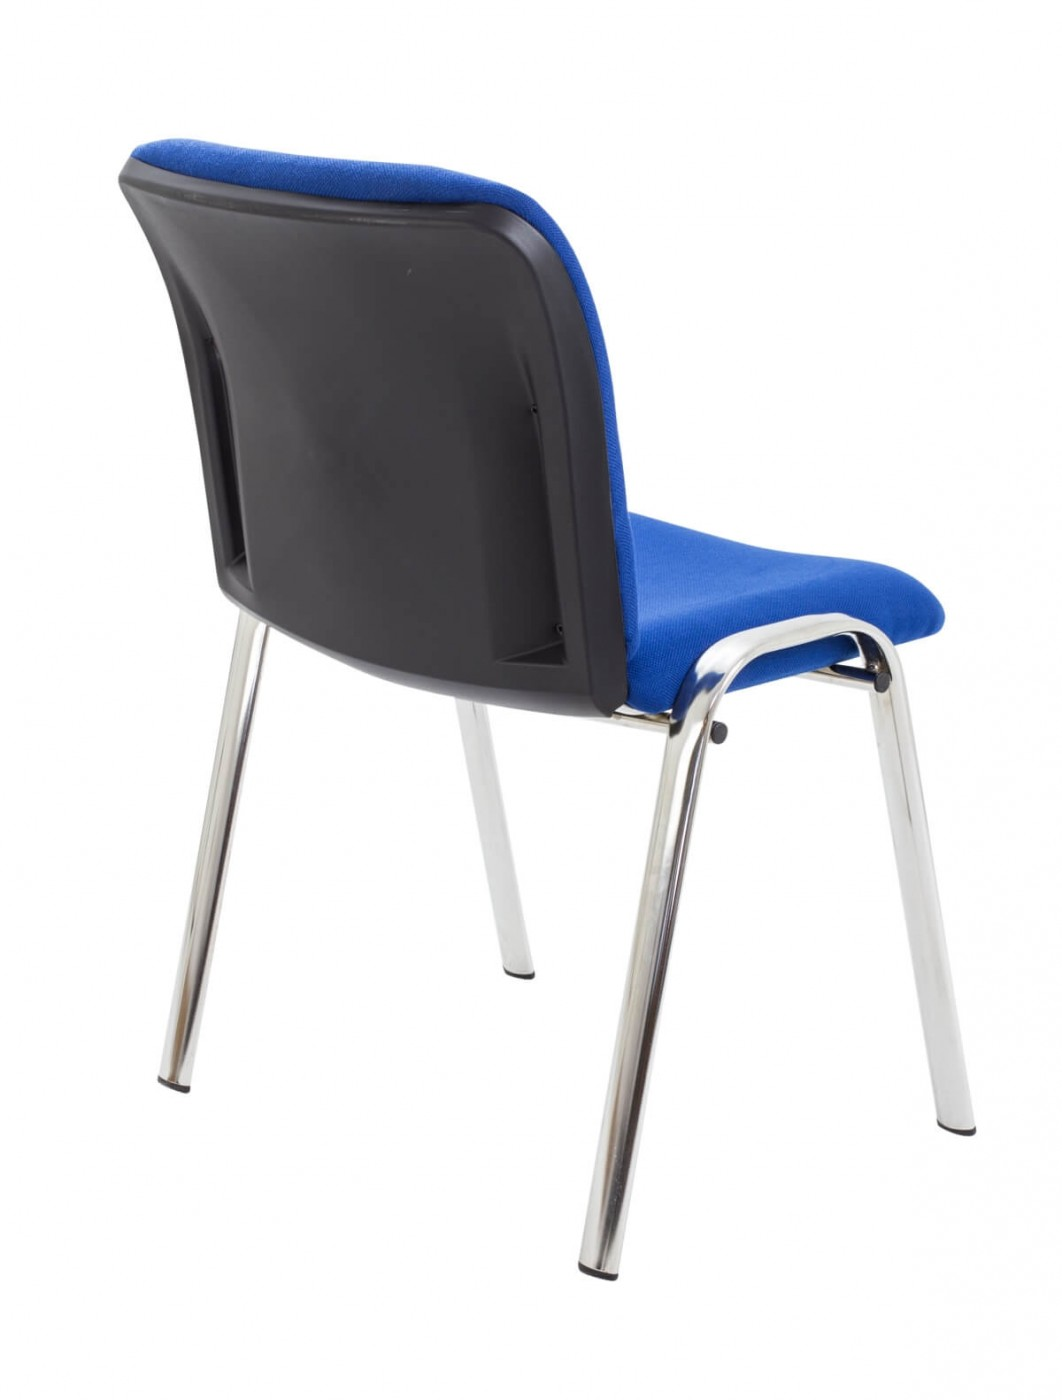 product by medium chair architonic task chairs from b projek teknion conference en